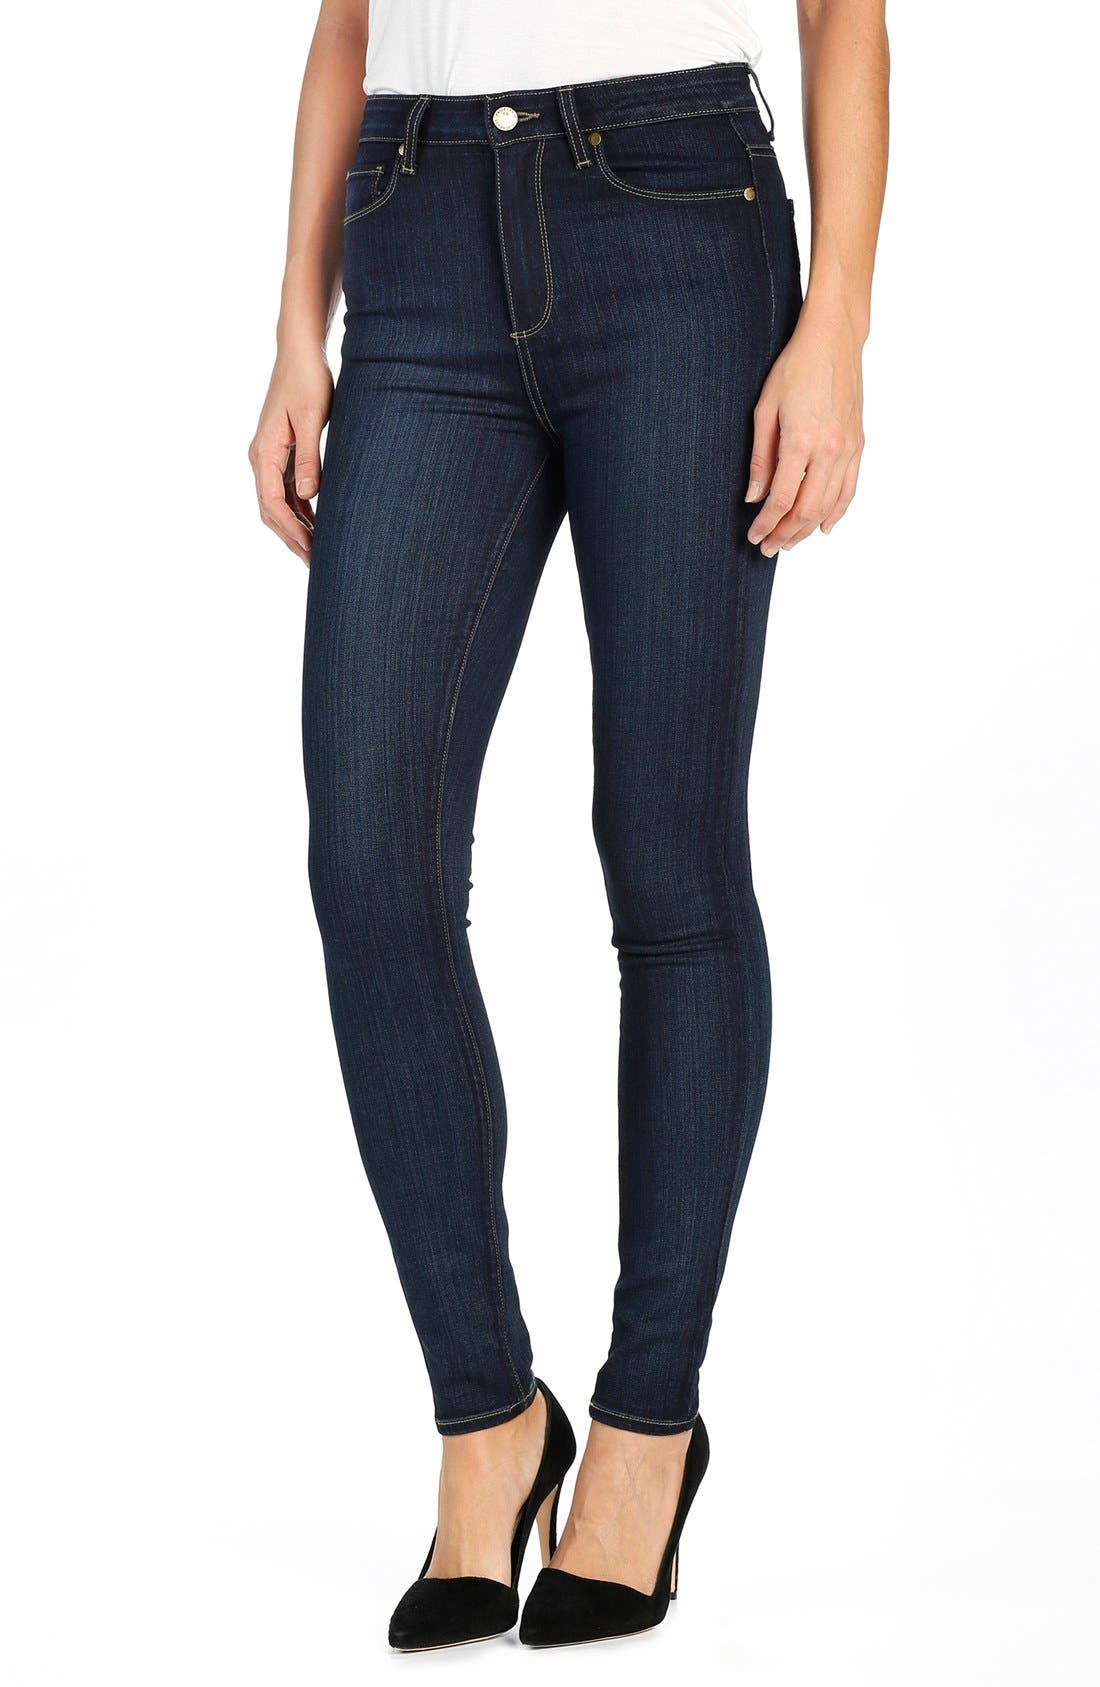 Alternate Image 1 Selected - PAIGE Transcend - Margot High Waist Ultra Skinny Jeans (La Rue)